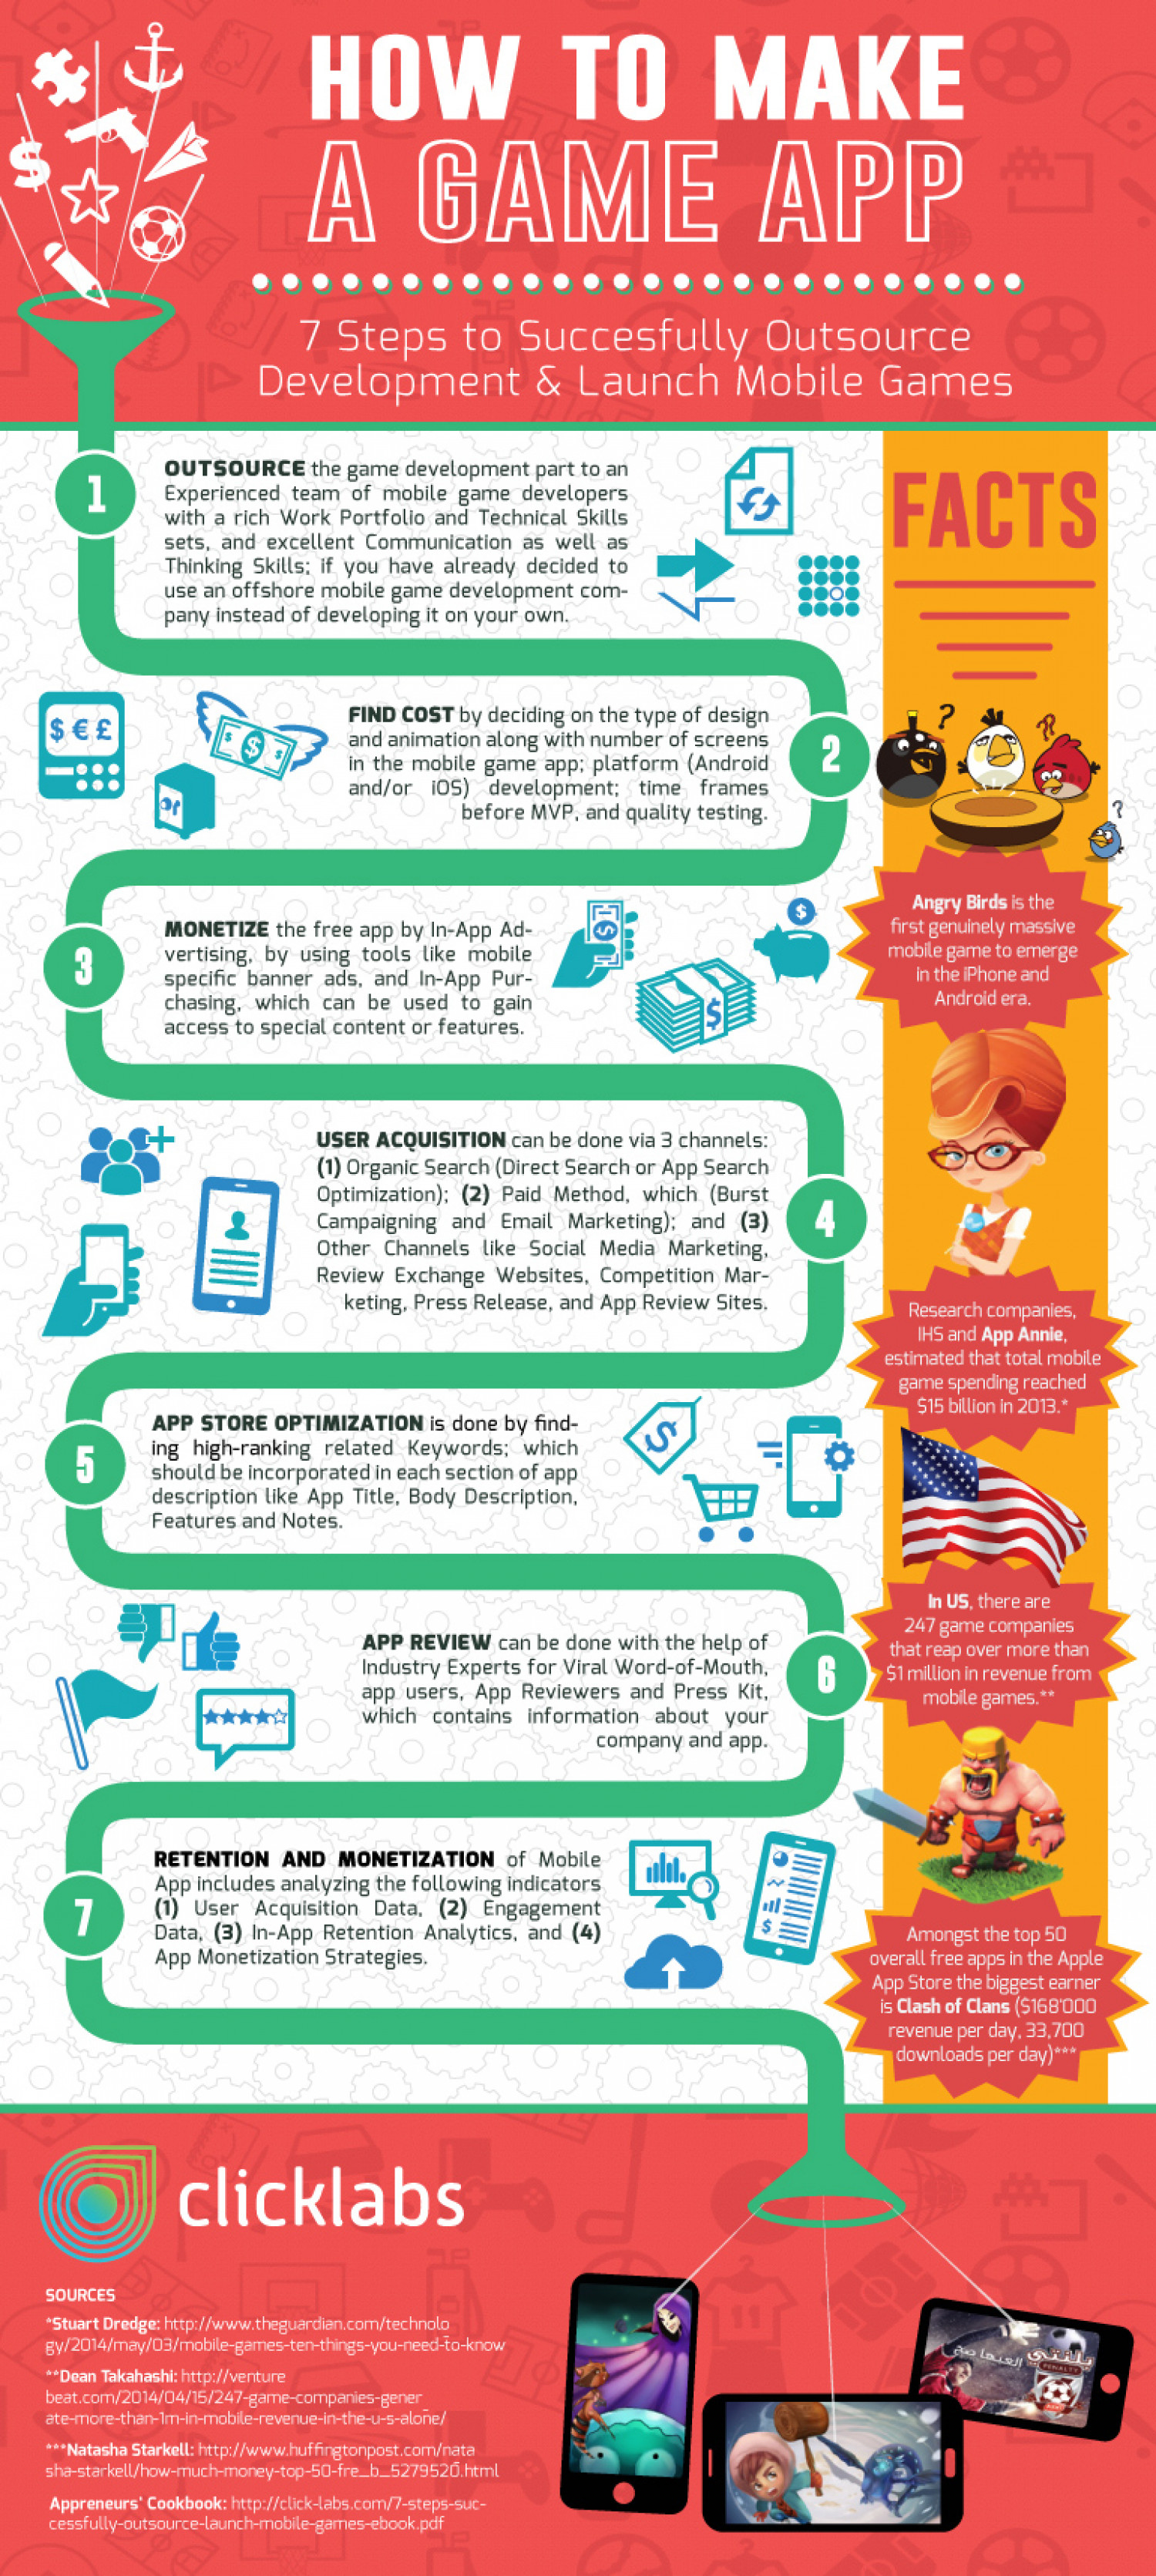 How to Make a Game App Infographic